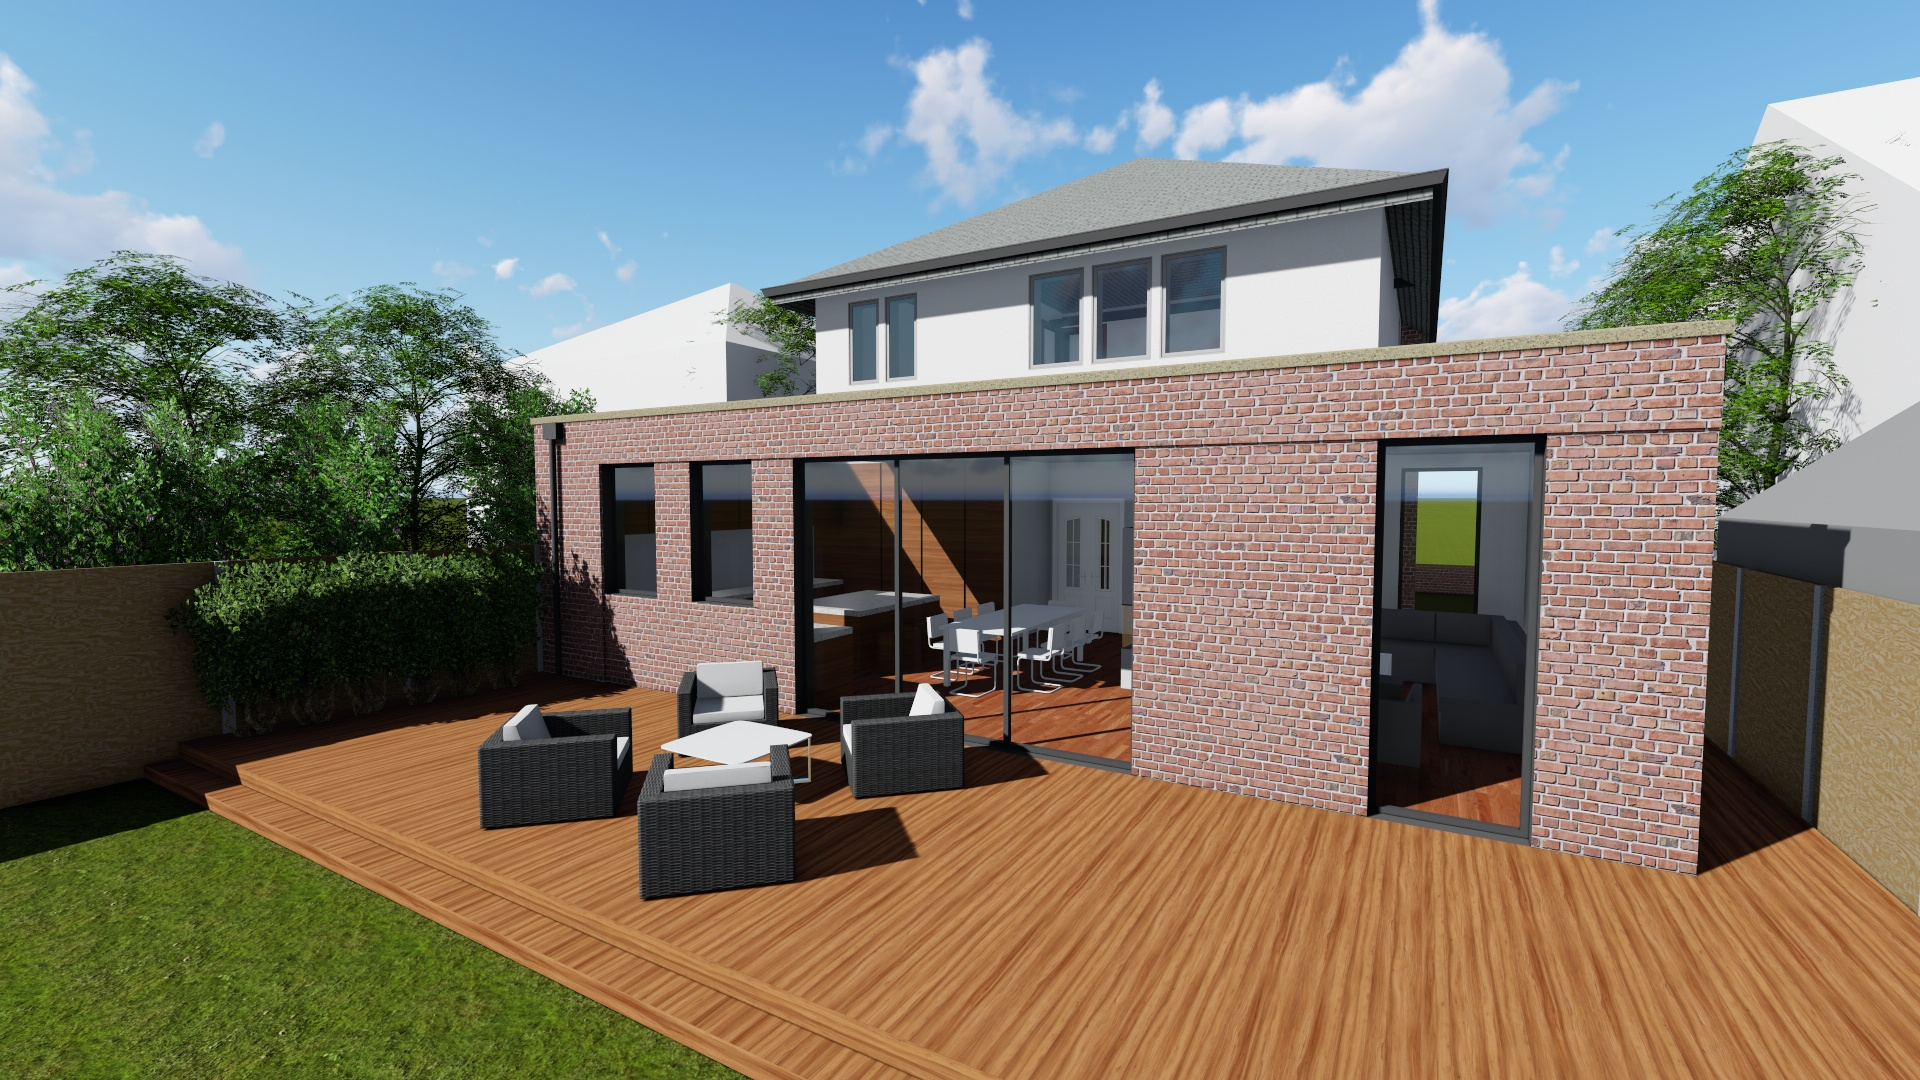 Carter-Zub - Proposed Extension Architectural Visualisation